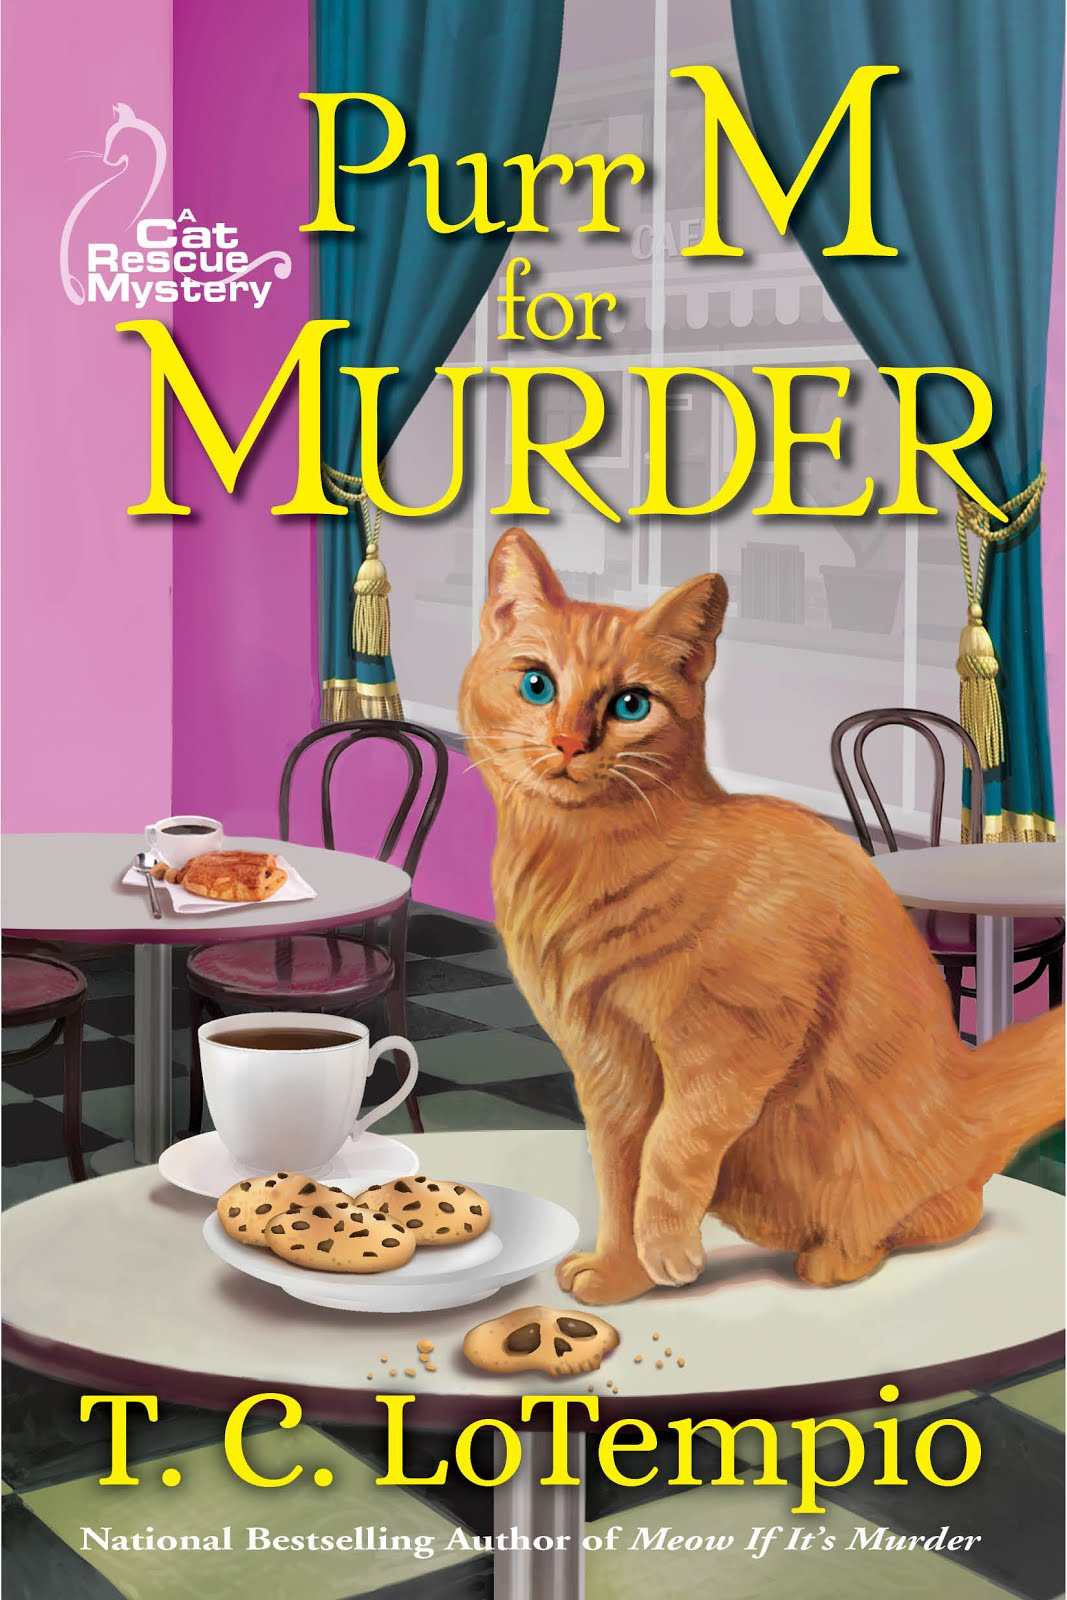 Purr M for MURDER